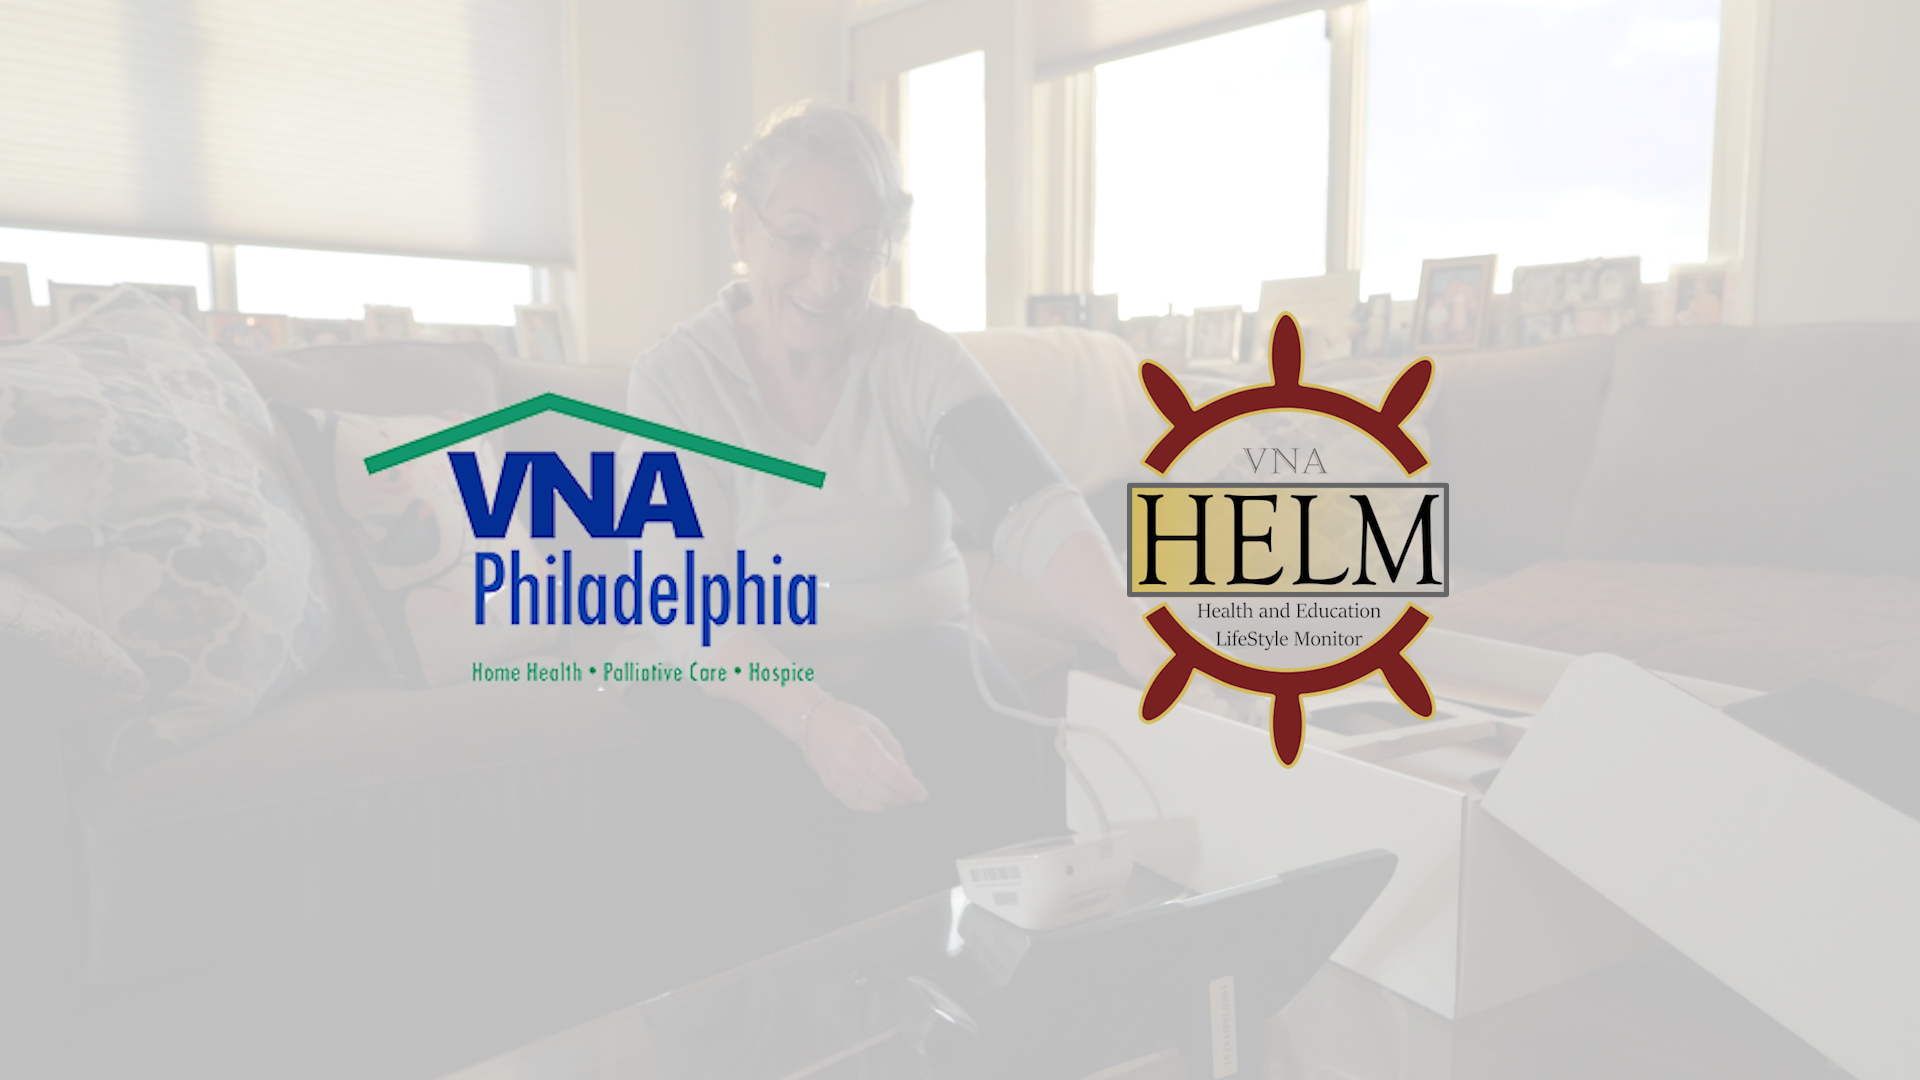 HRS - VNA Philadelphia HELM Program